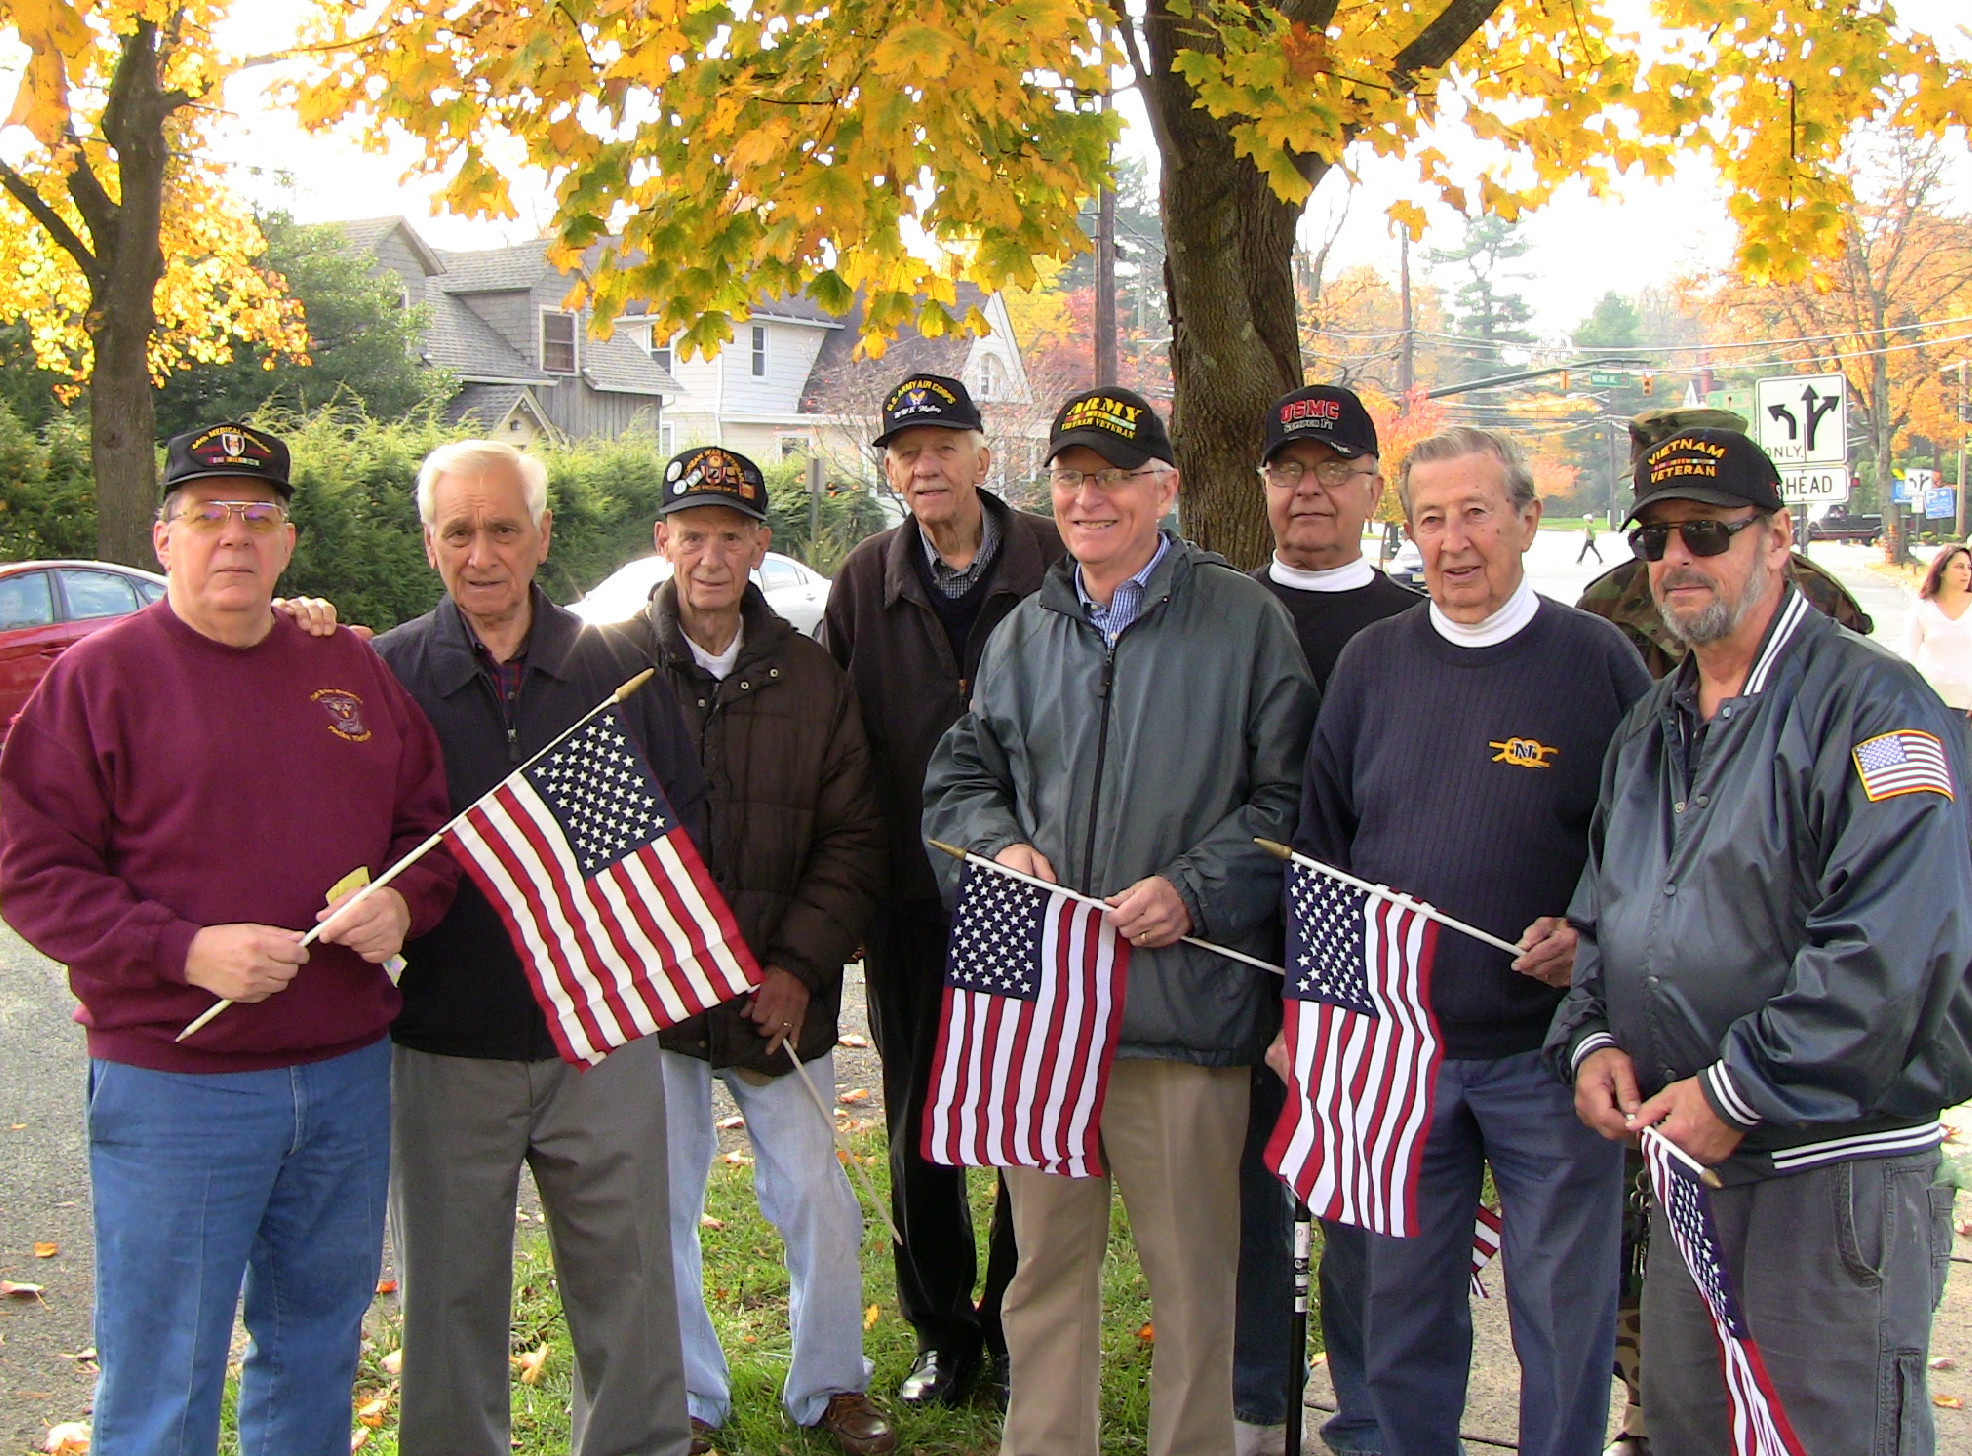 9dee73b95208317a3d92_Veterans_gather_at_Fanwood_ceremony.JPG